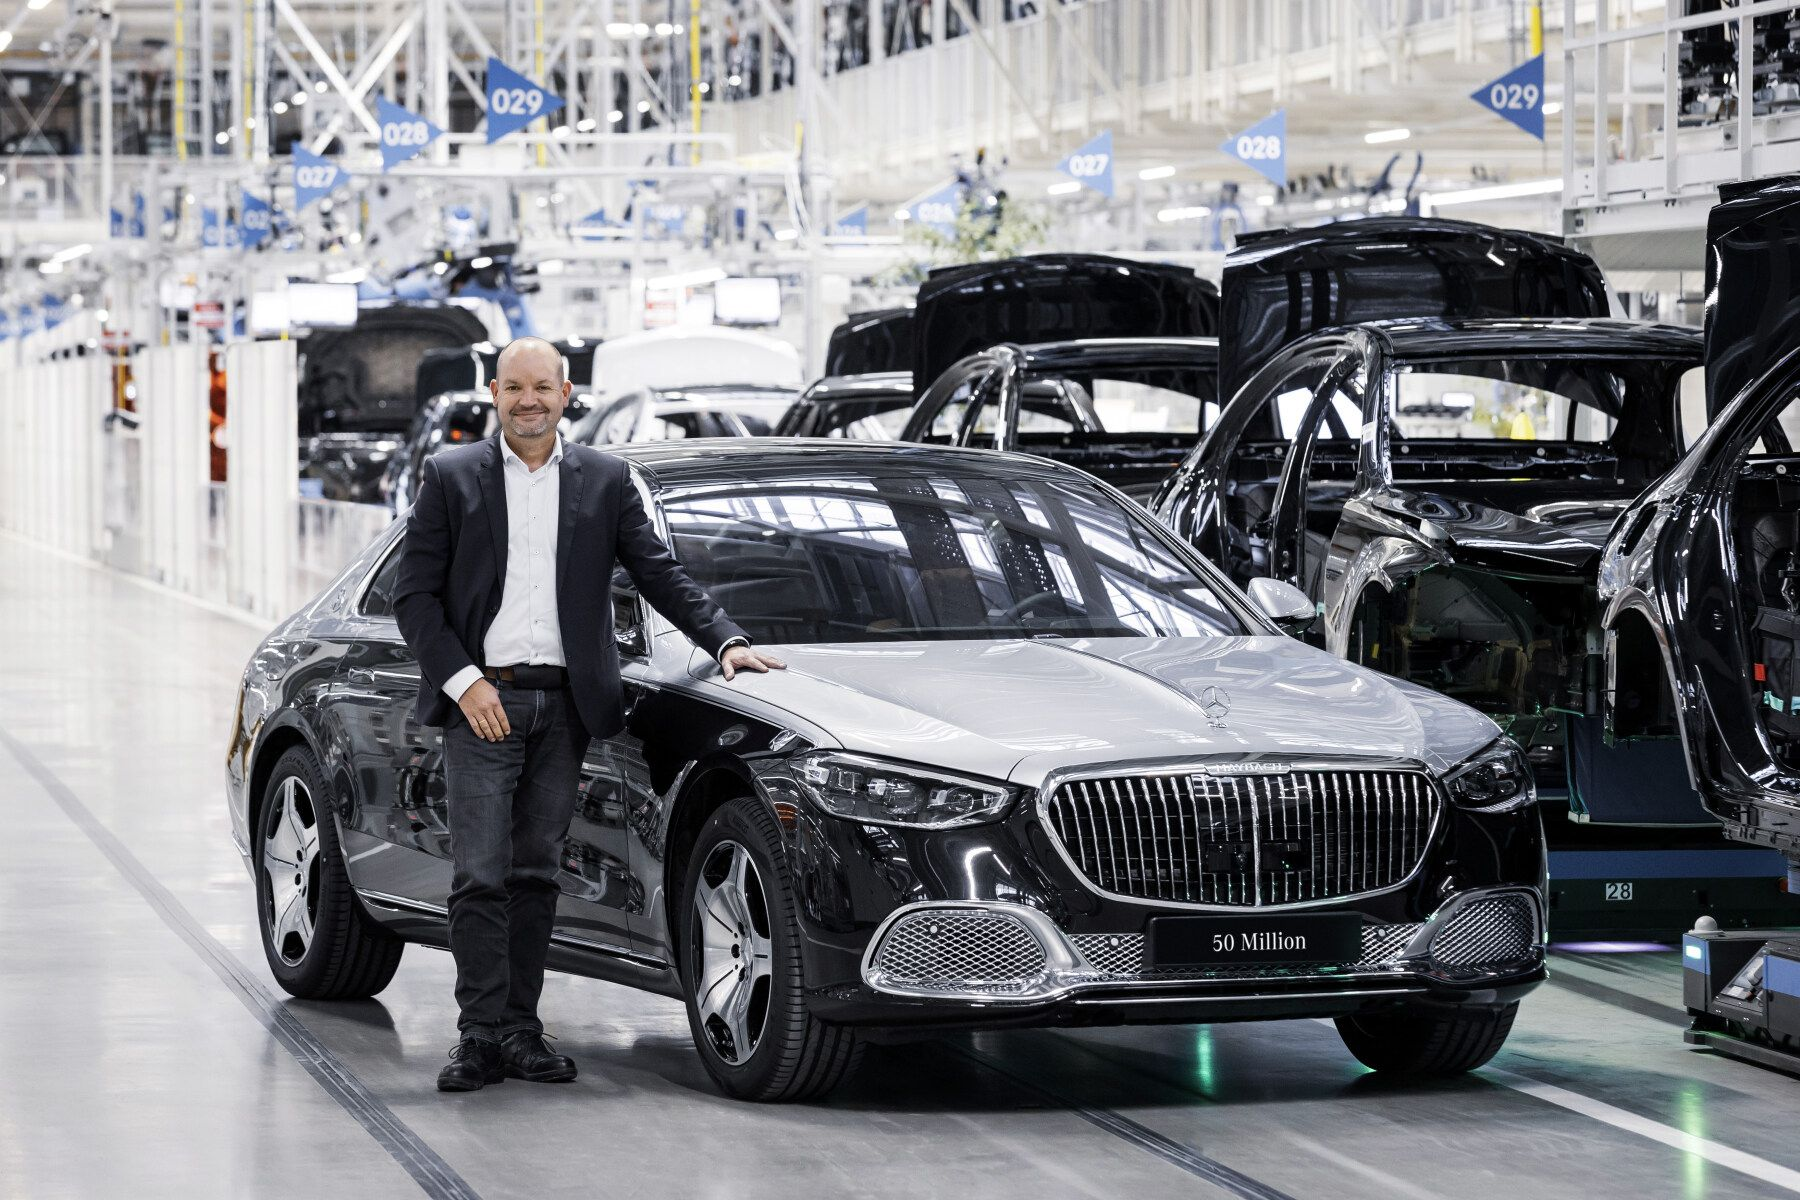 Mercedes Benz produces the 50 millionth passenger car and its a Maybach S-Class